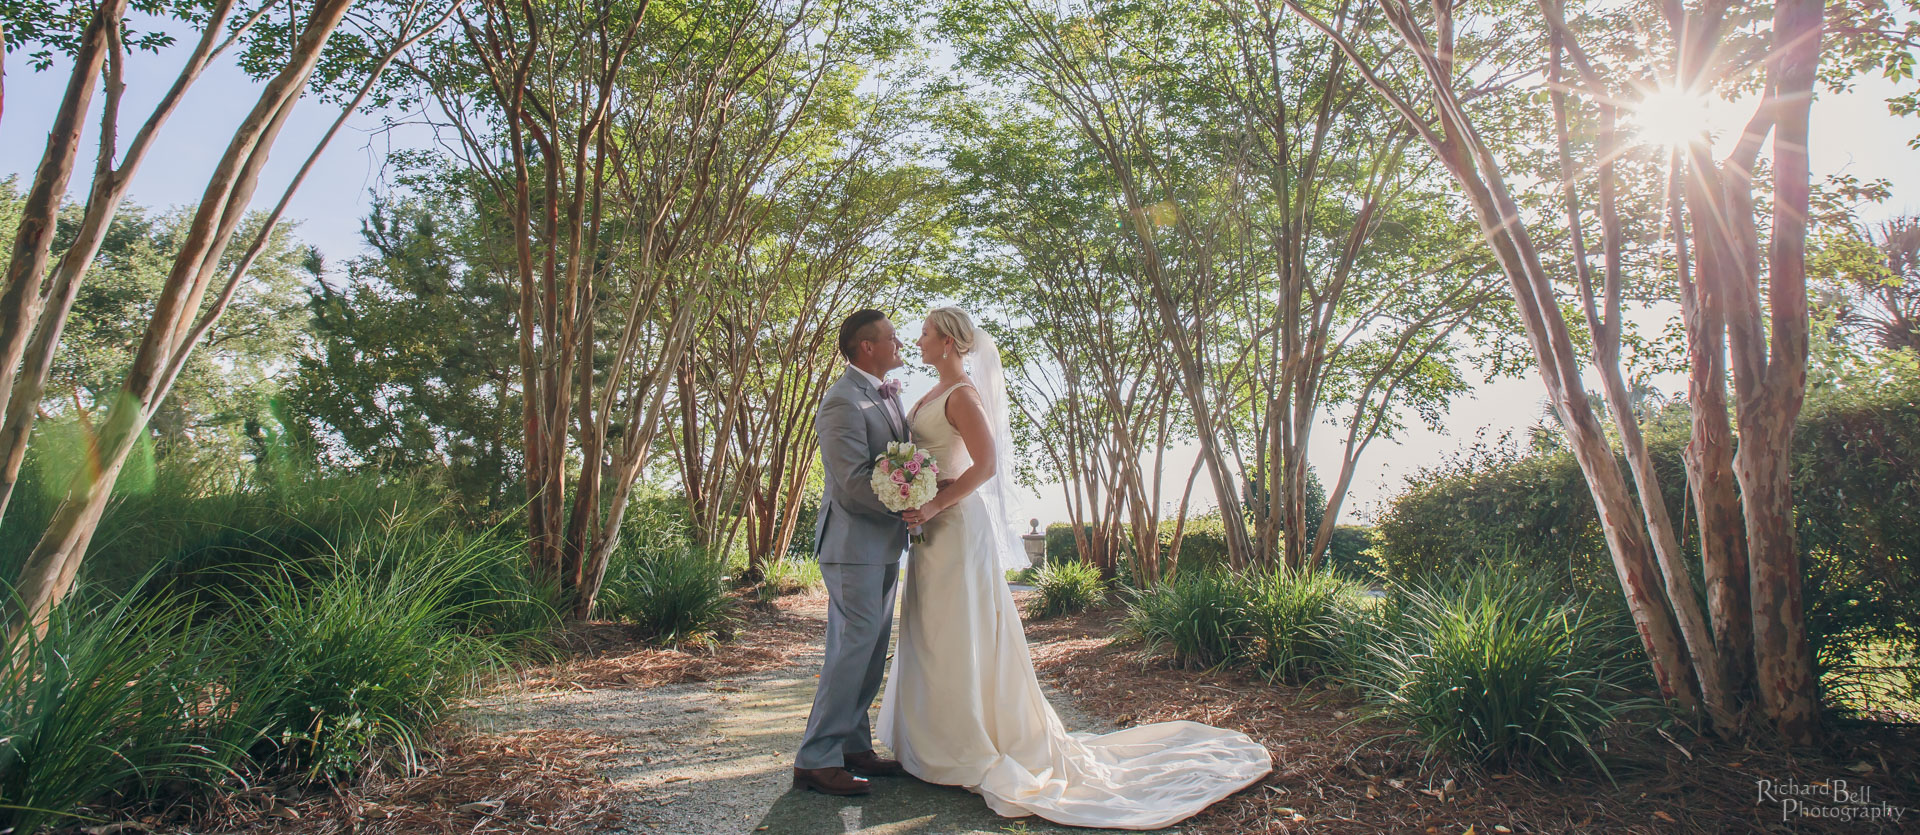 Bride and Groom at Harborside East